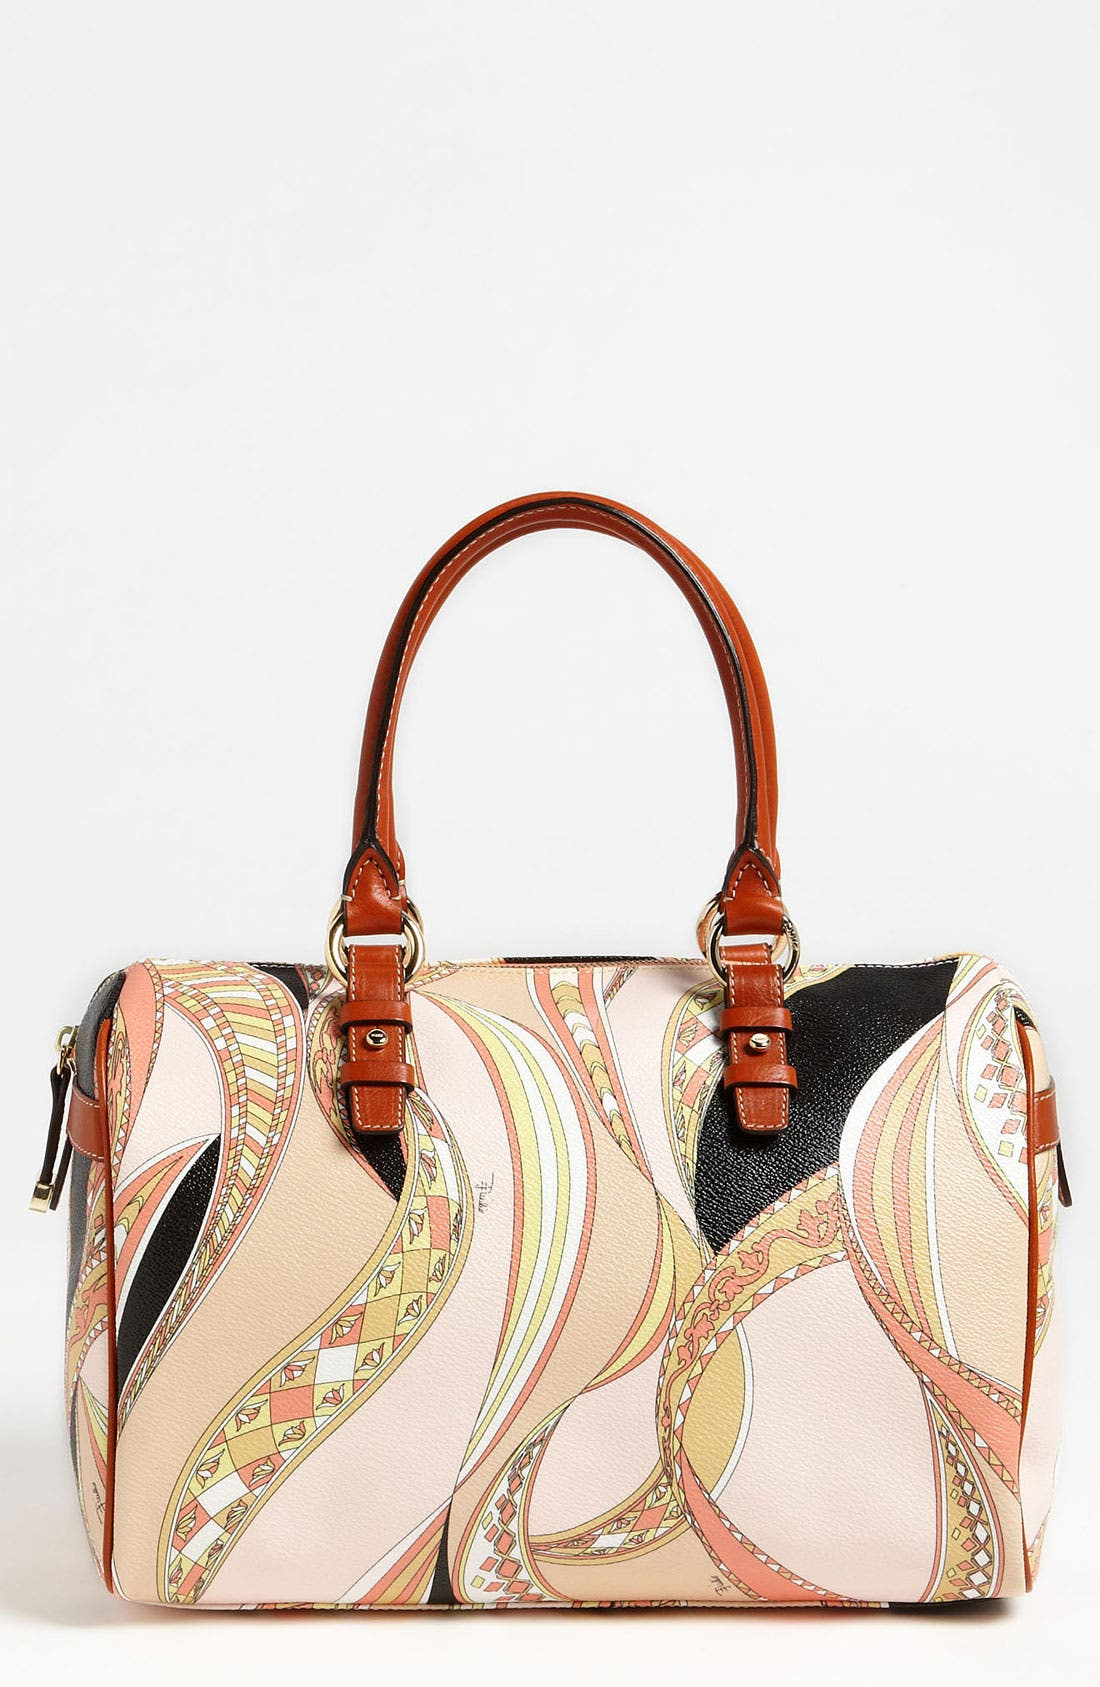 Alternate Image 1 Selected - Emilio Pucci 'Large' Boston Bag